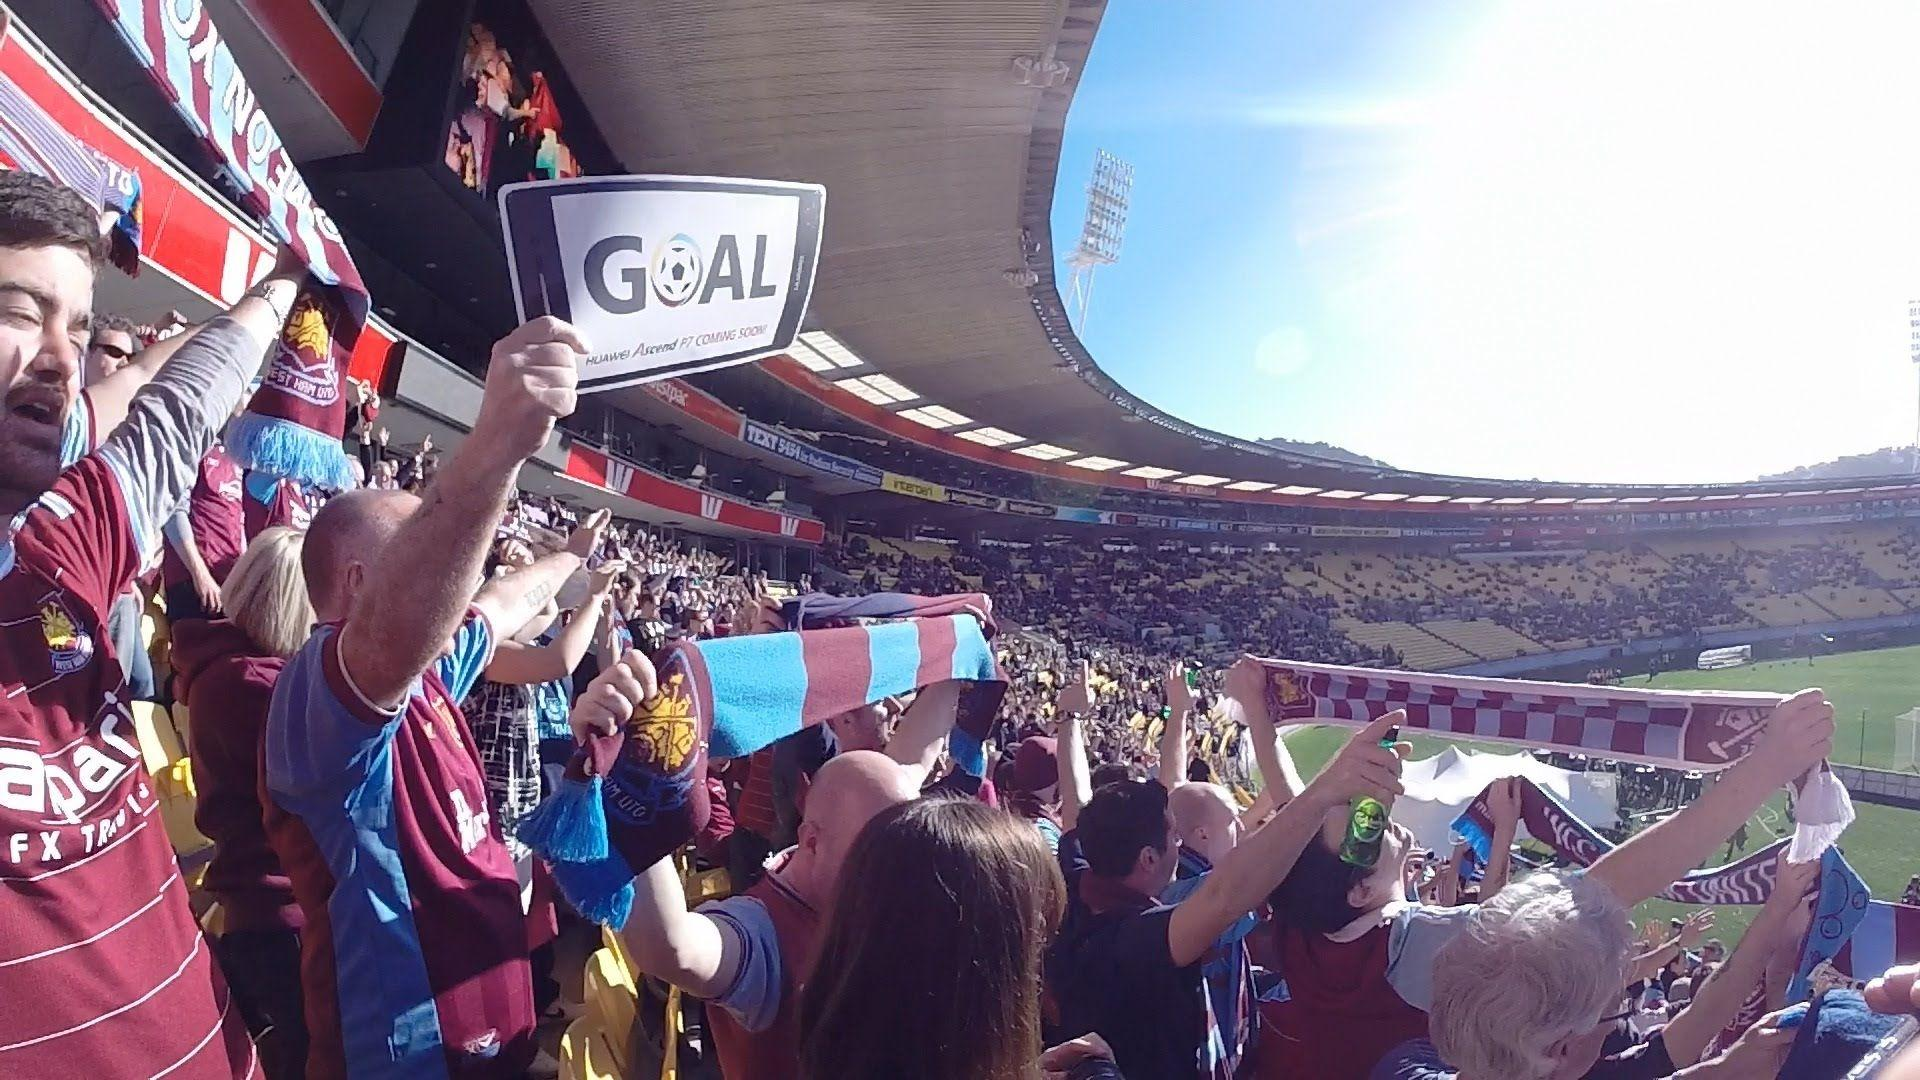 West Ham United fans travel to New Zealand for the Football United